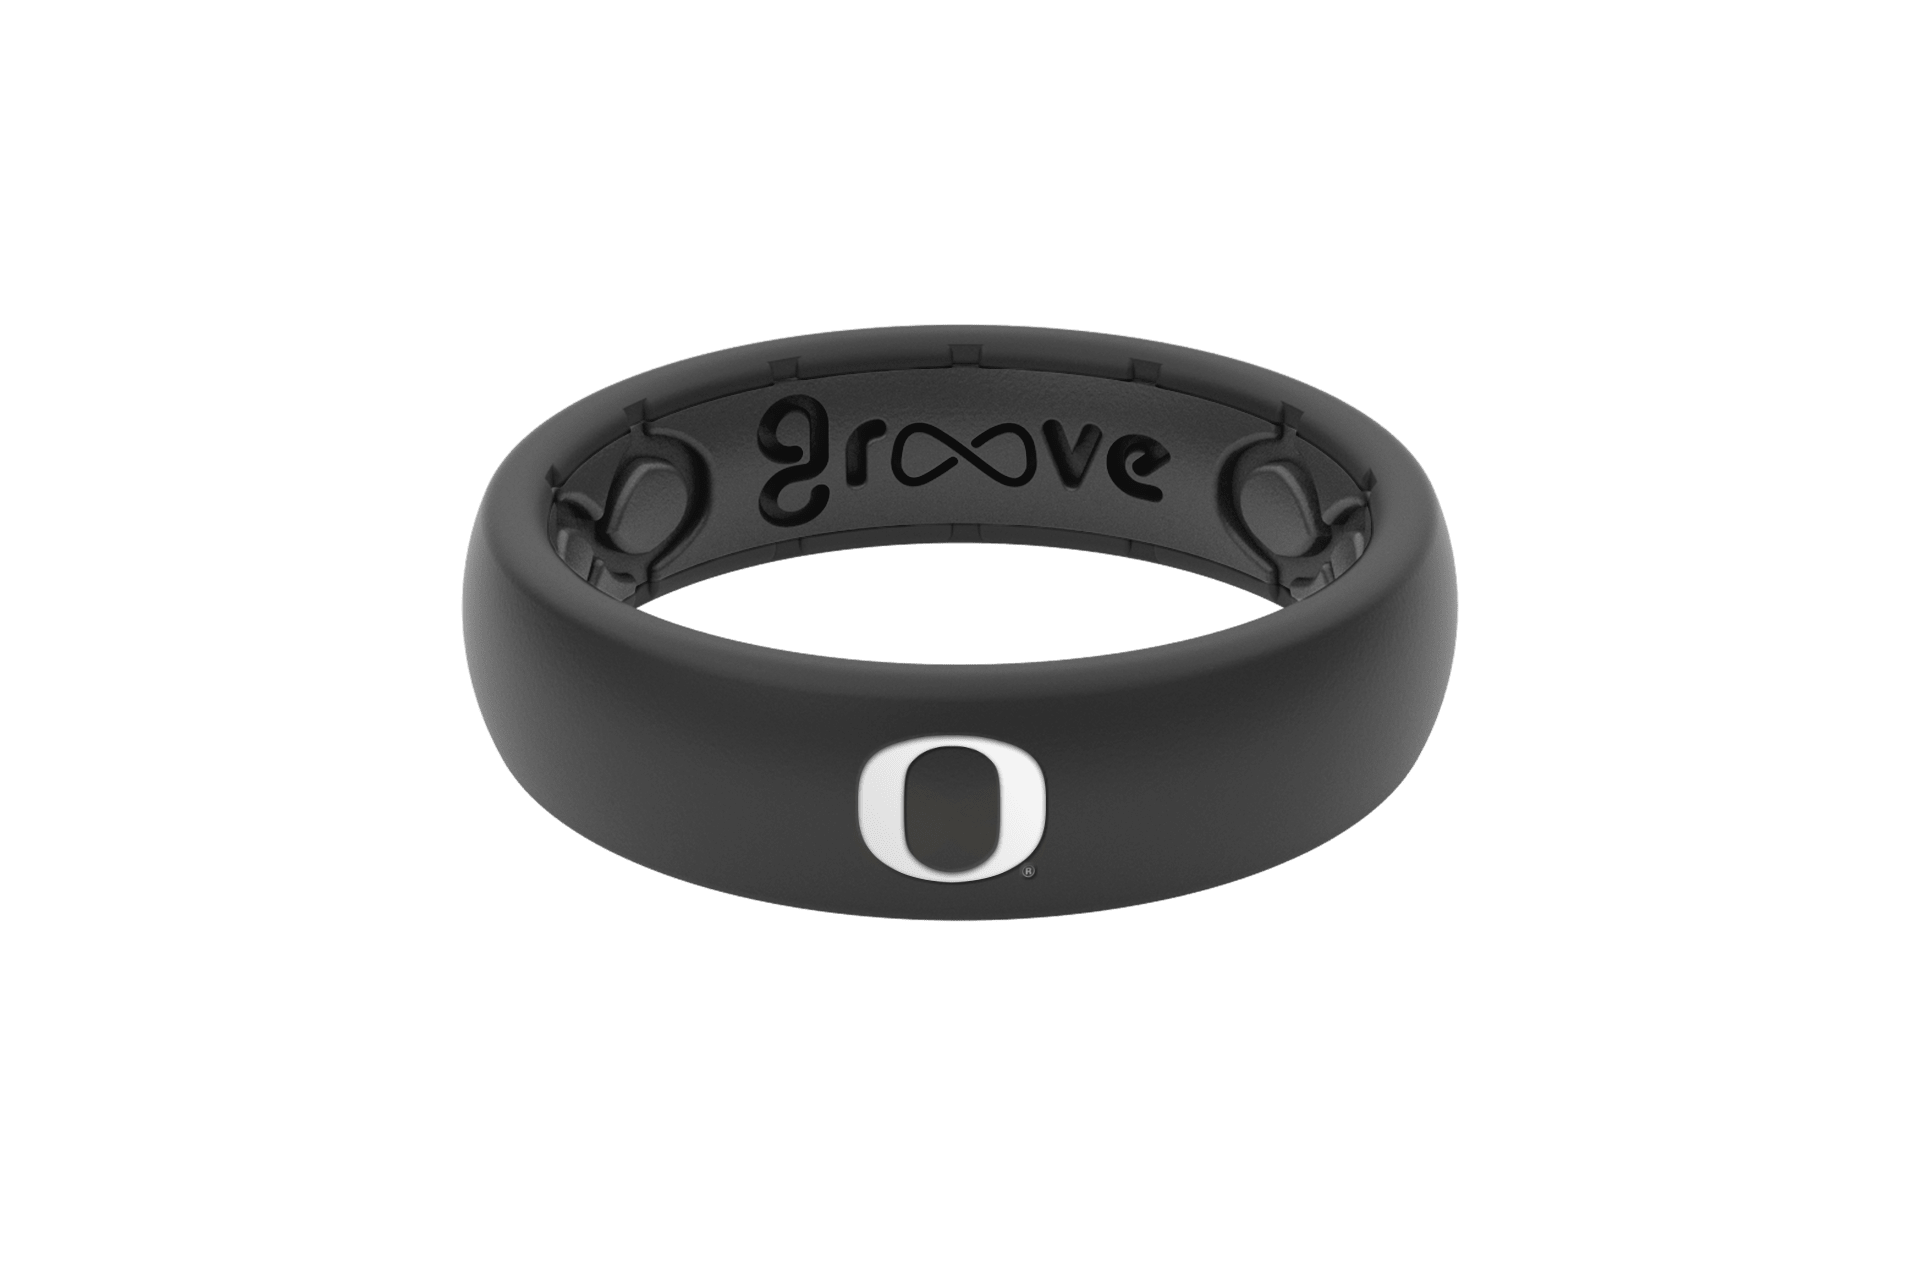 Thin College Oregon Black - Groove Life Silicone Wedding Rings